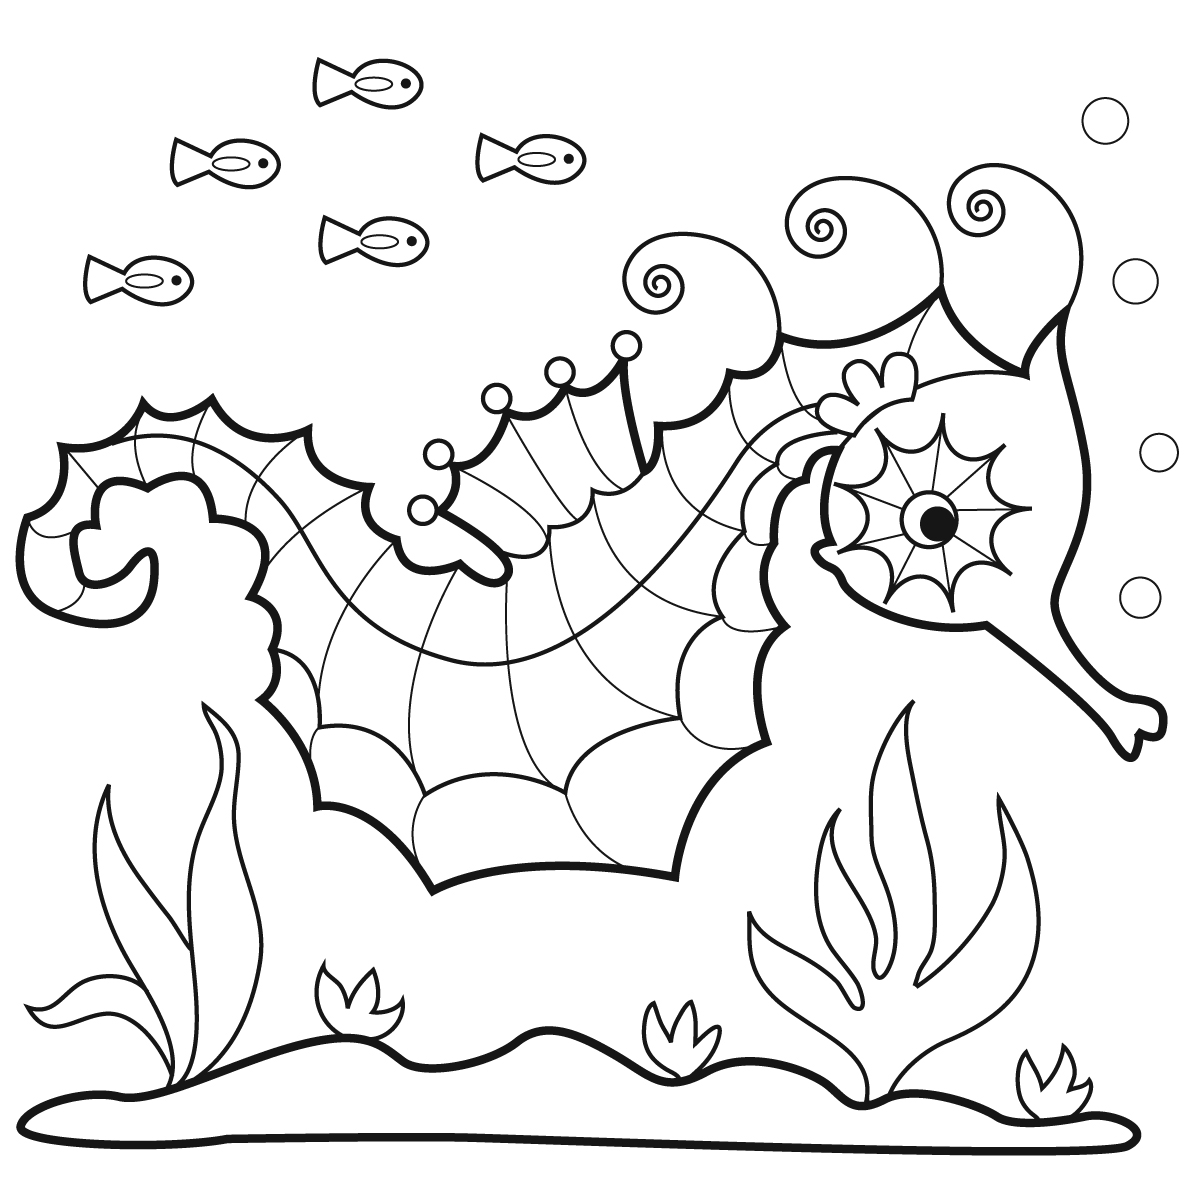 Coloring pages seahorse ~ Marisa Straccia: Sea-horses for Bunnycup